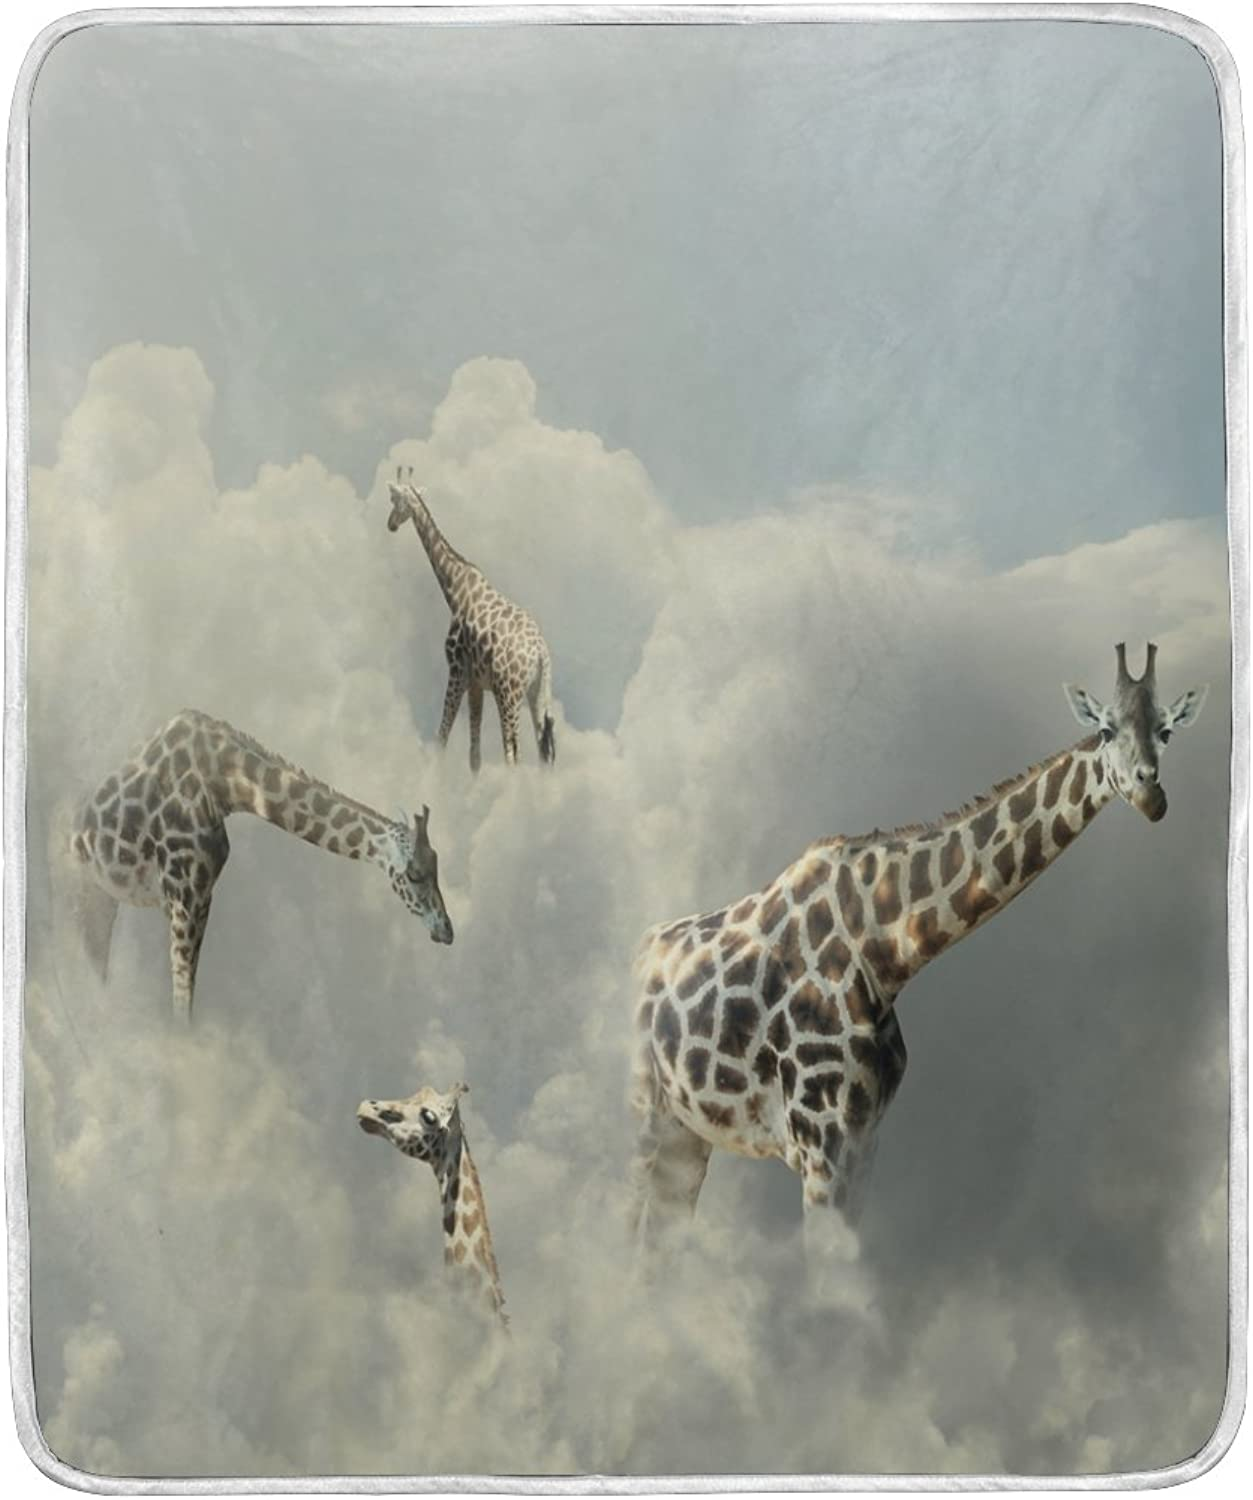 ALAZA Home Decor Funny Giraffe Cloud Blanket Soft Warm Blankets for Bed Couch Sofa Lightweight Travelling Camping 60 x 50 inch Throw Size for Kids Boys Women